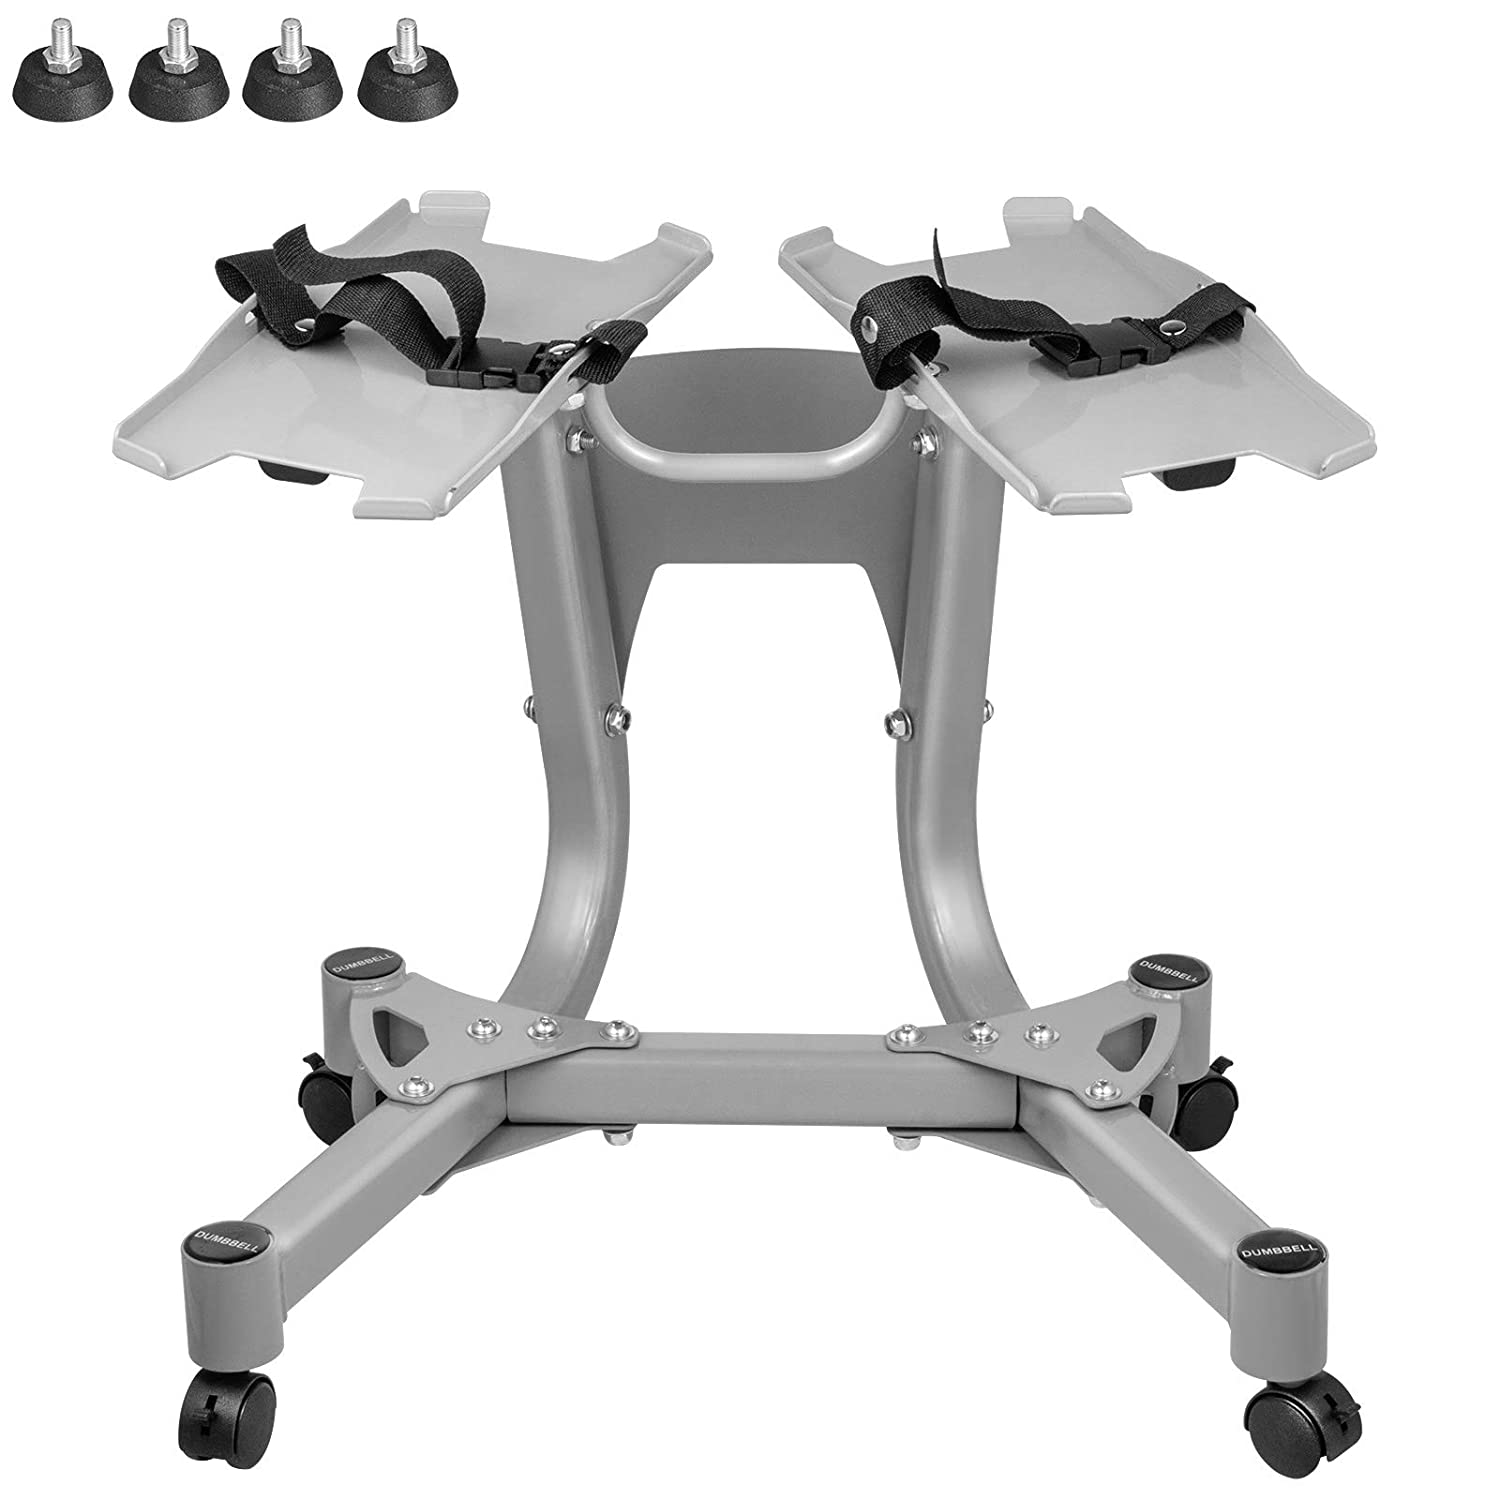 Happybuy Adjustable Dumbbell Series Fitness Dumbbell Standard Adjustable Dumbbell with Handle and Weight Plate for Home Gym System- Building Muscle